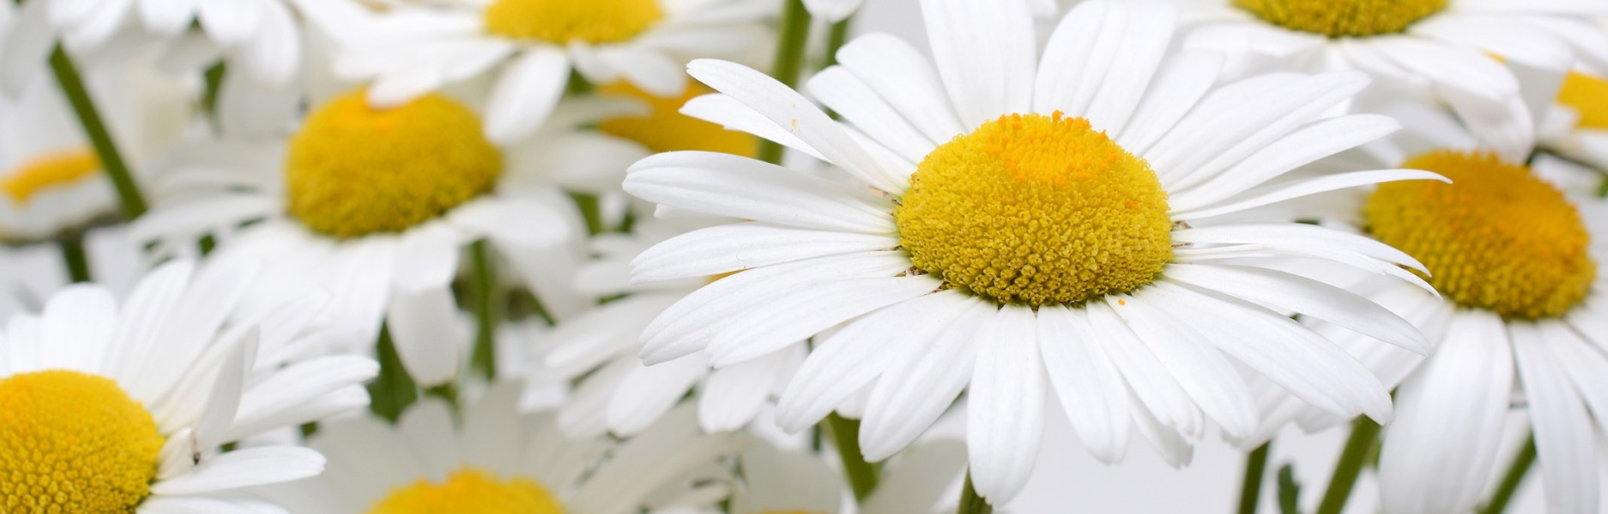 Daisies, fresh and hopeful